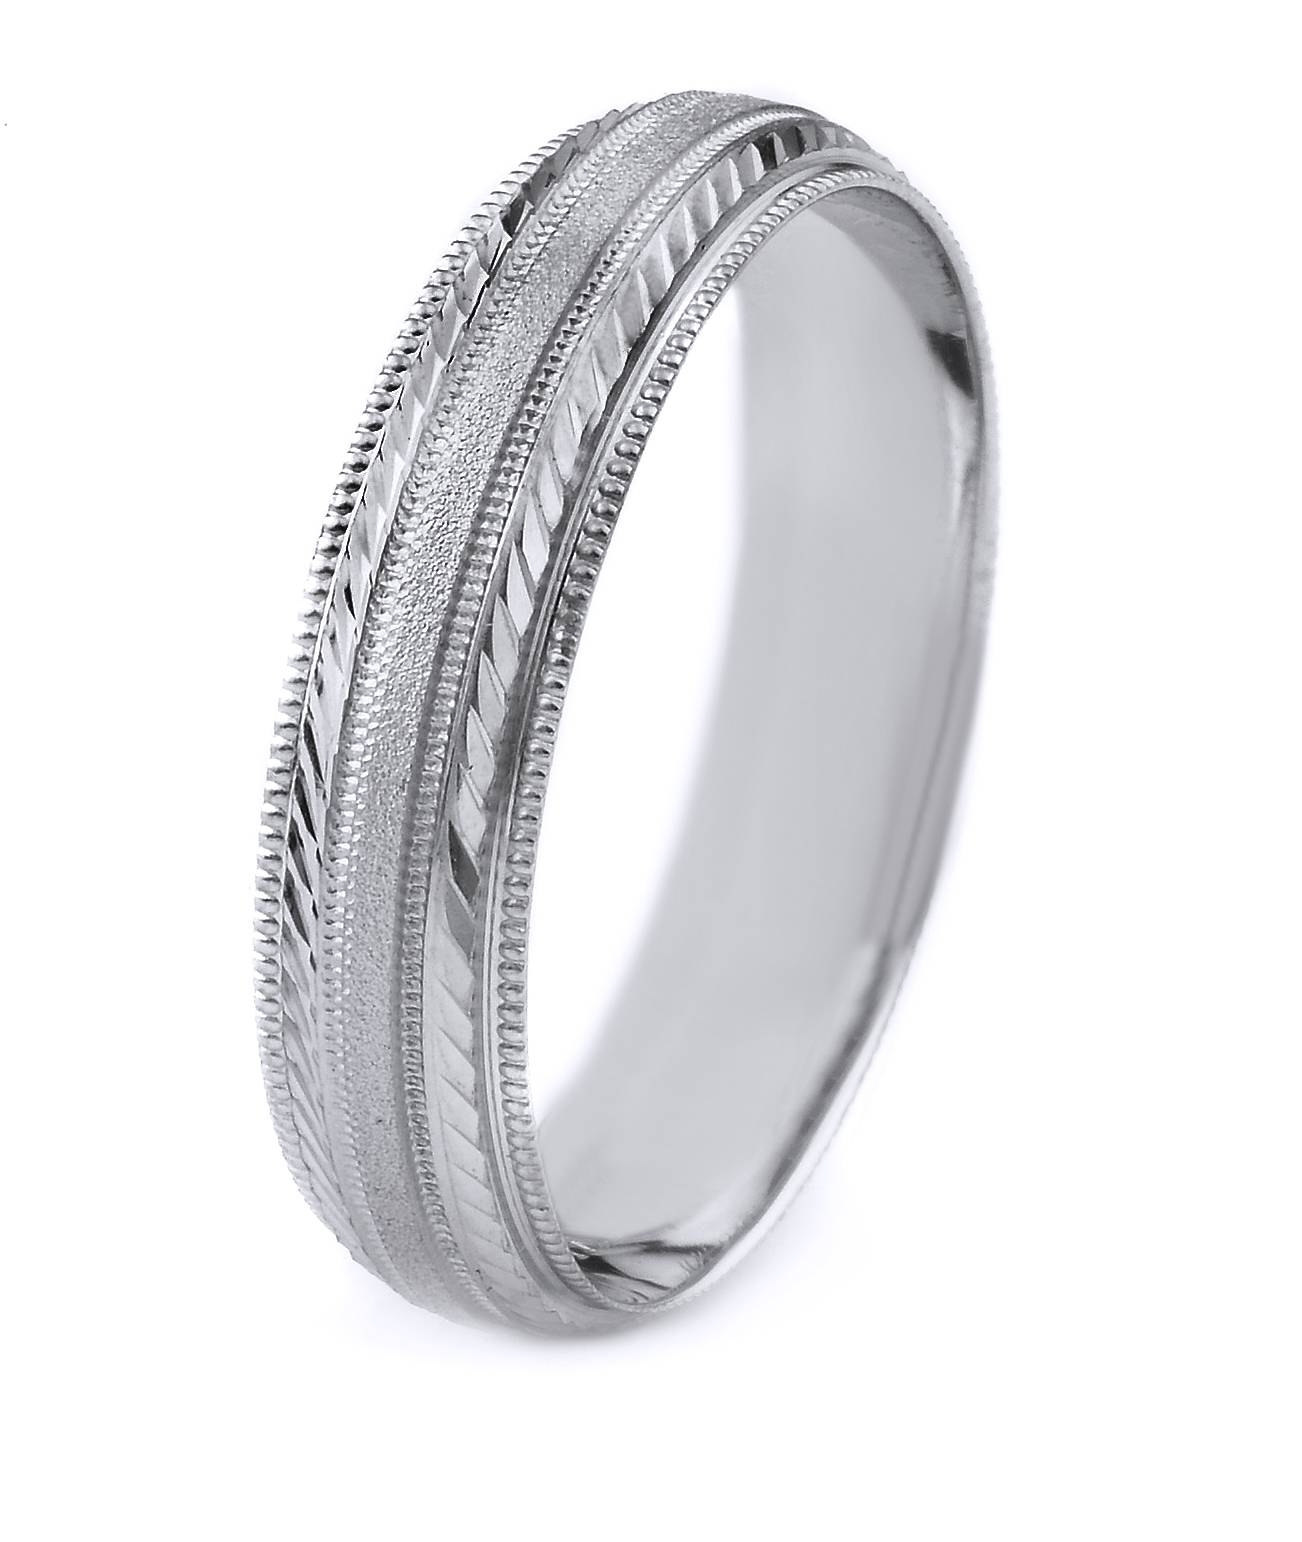 Platinum Men's Wedding Band With Stone Finish Center, Polished Inside Most Recent Platinum Milgrain Wedding Bands (View 10 of 15)